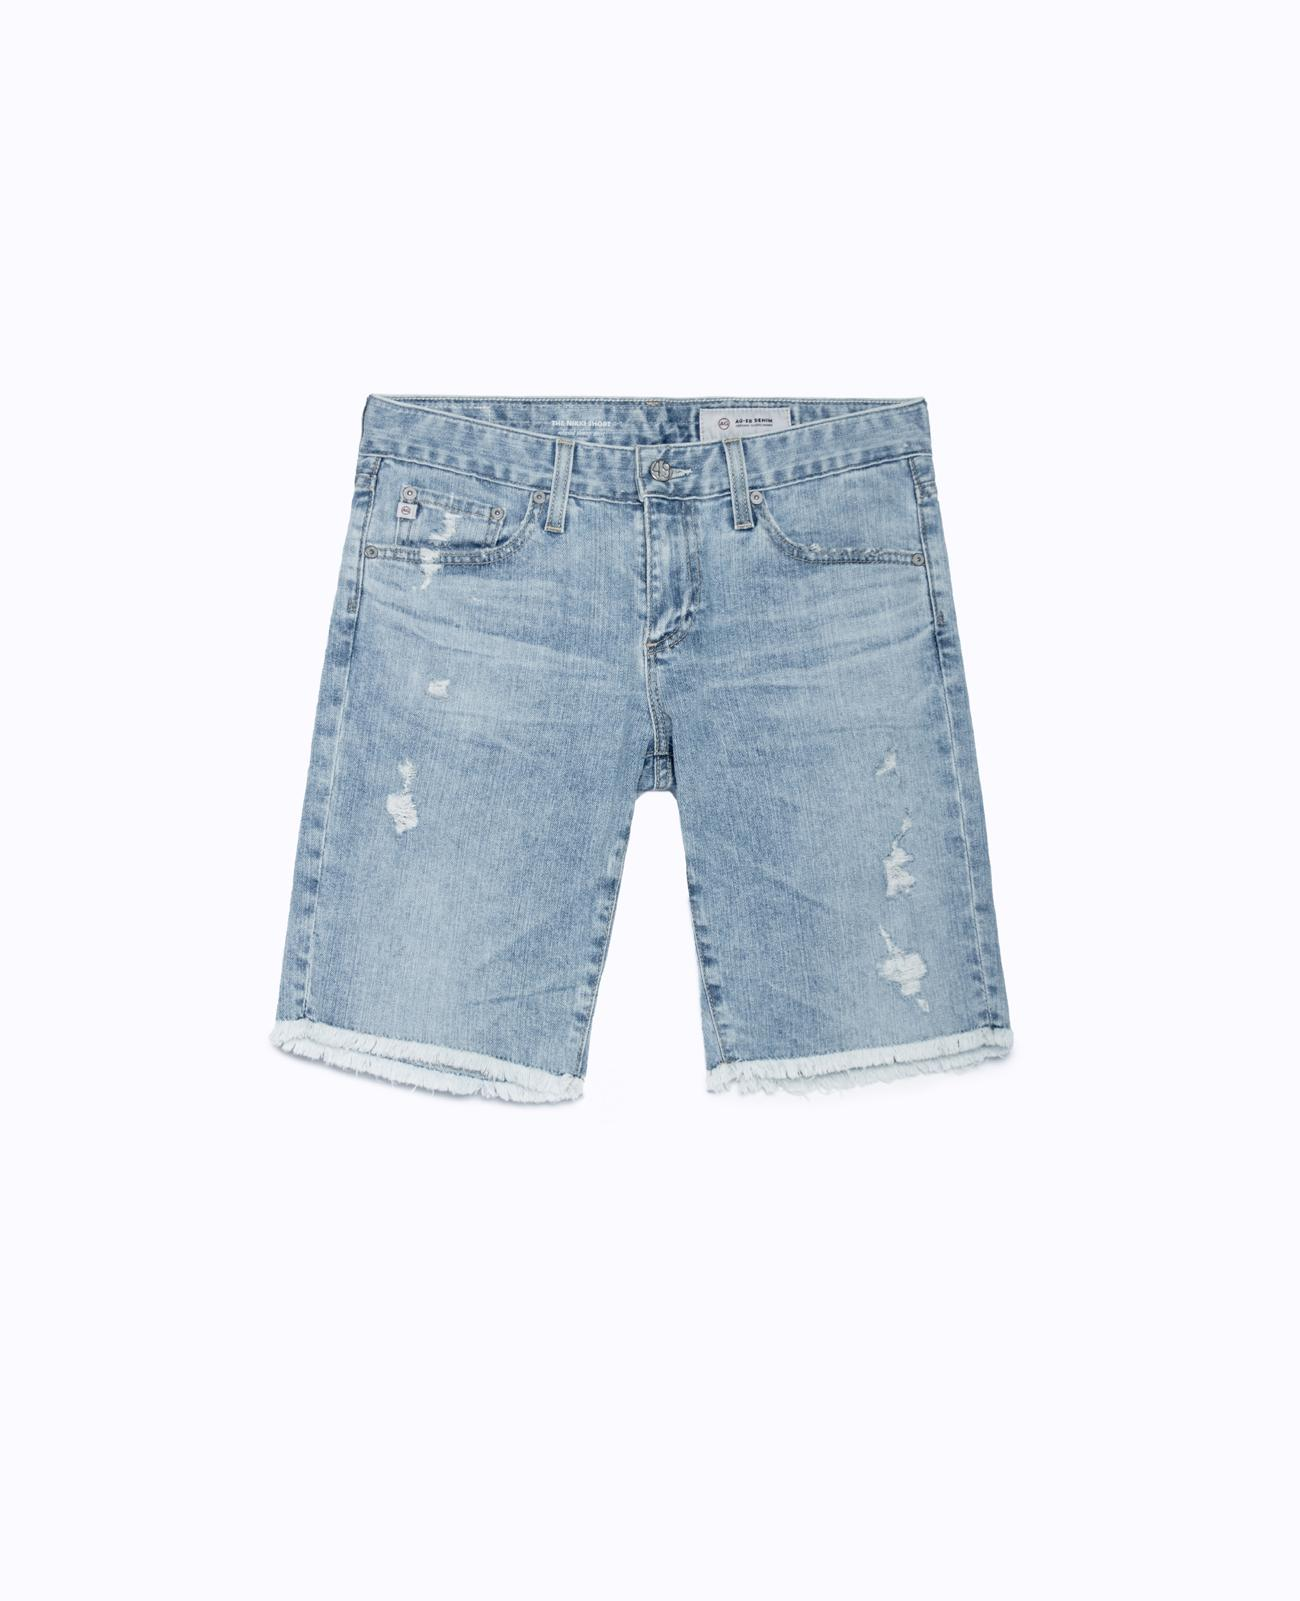 9139f3a189 The Nikki Short in 24 Years Relief AG Jeans Official Store